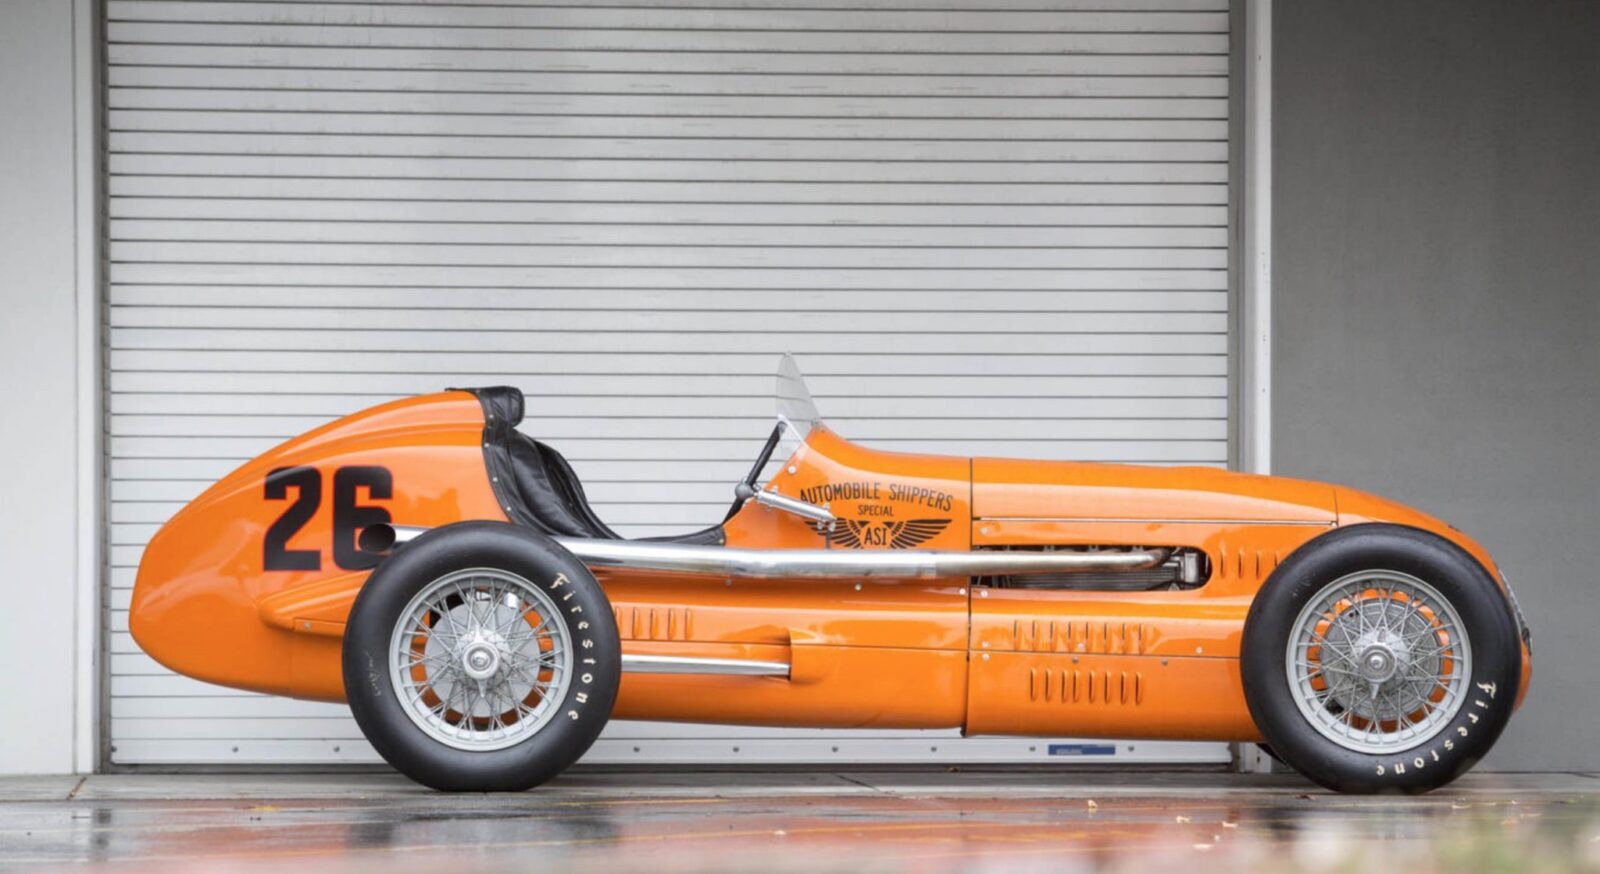 Automobile Shippers Special Indy Roadster